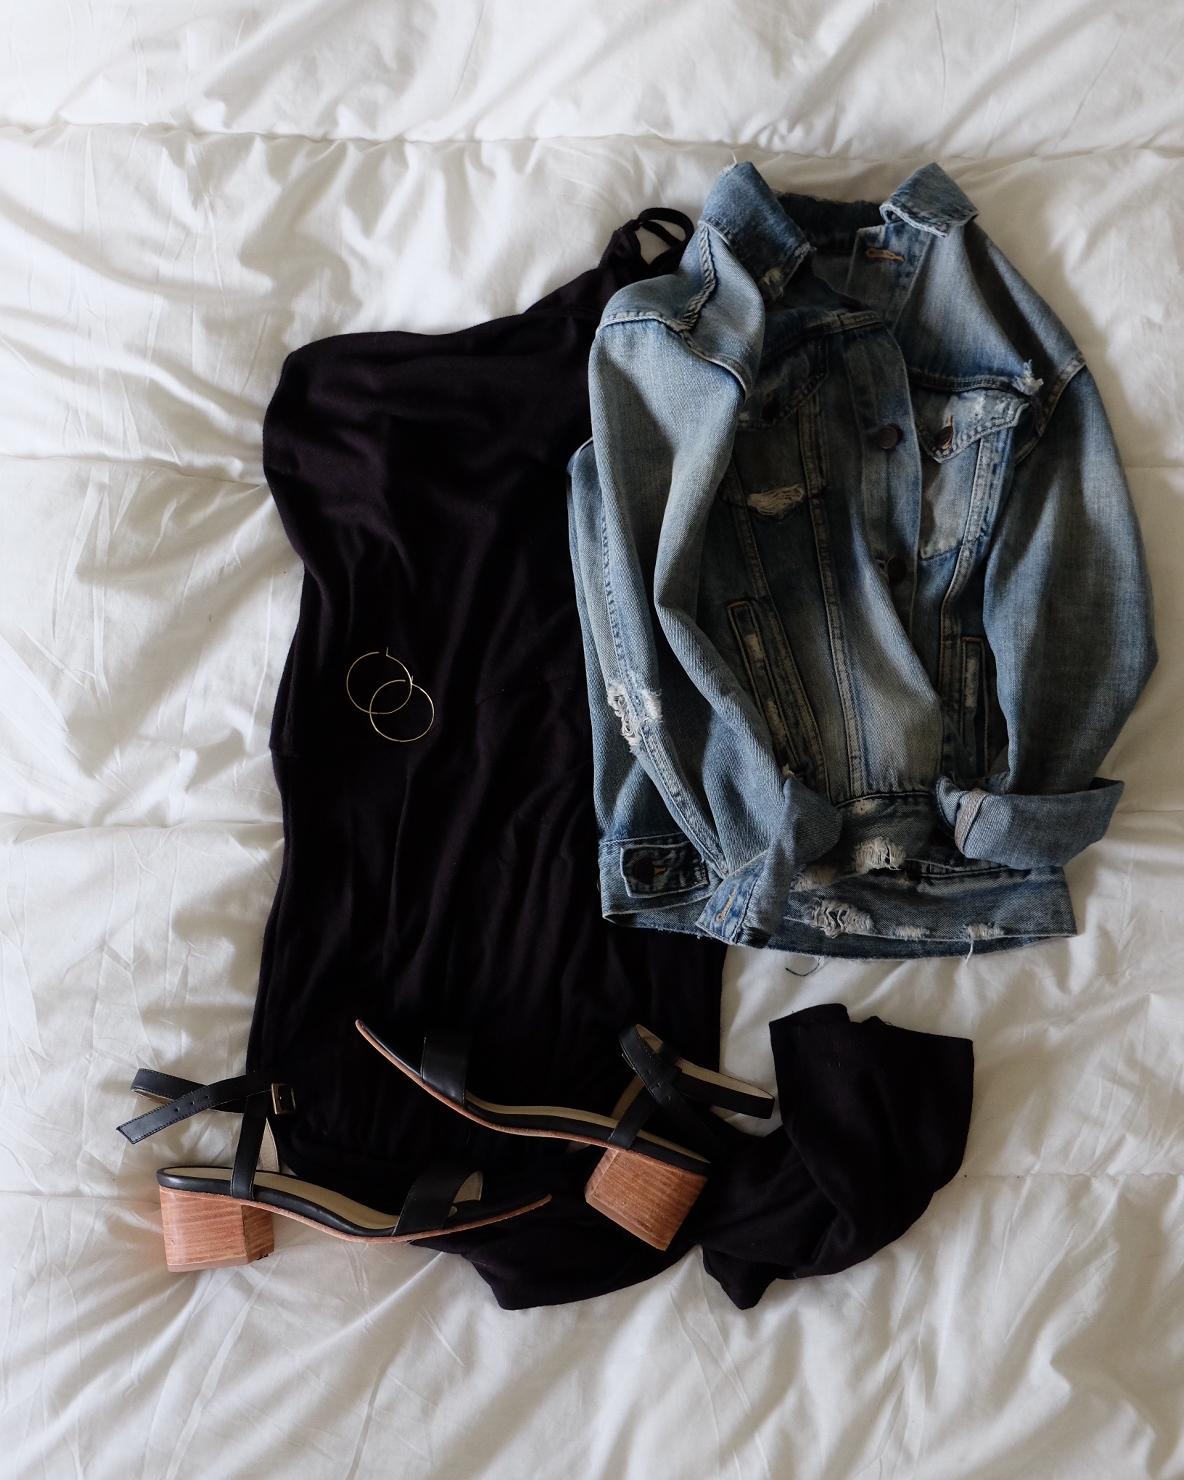 Ethical fashion tips and tricks!